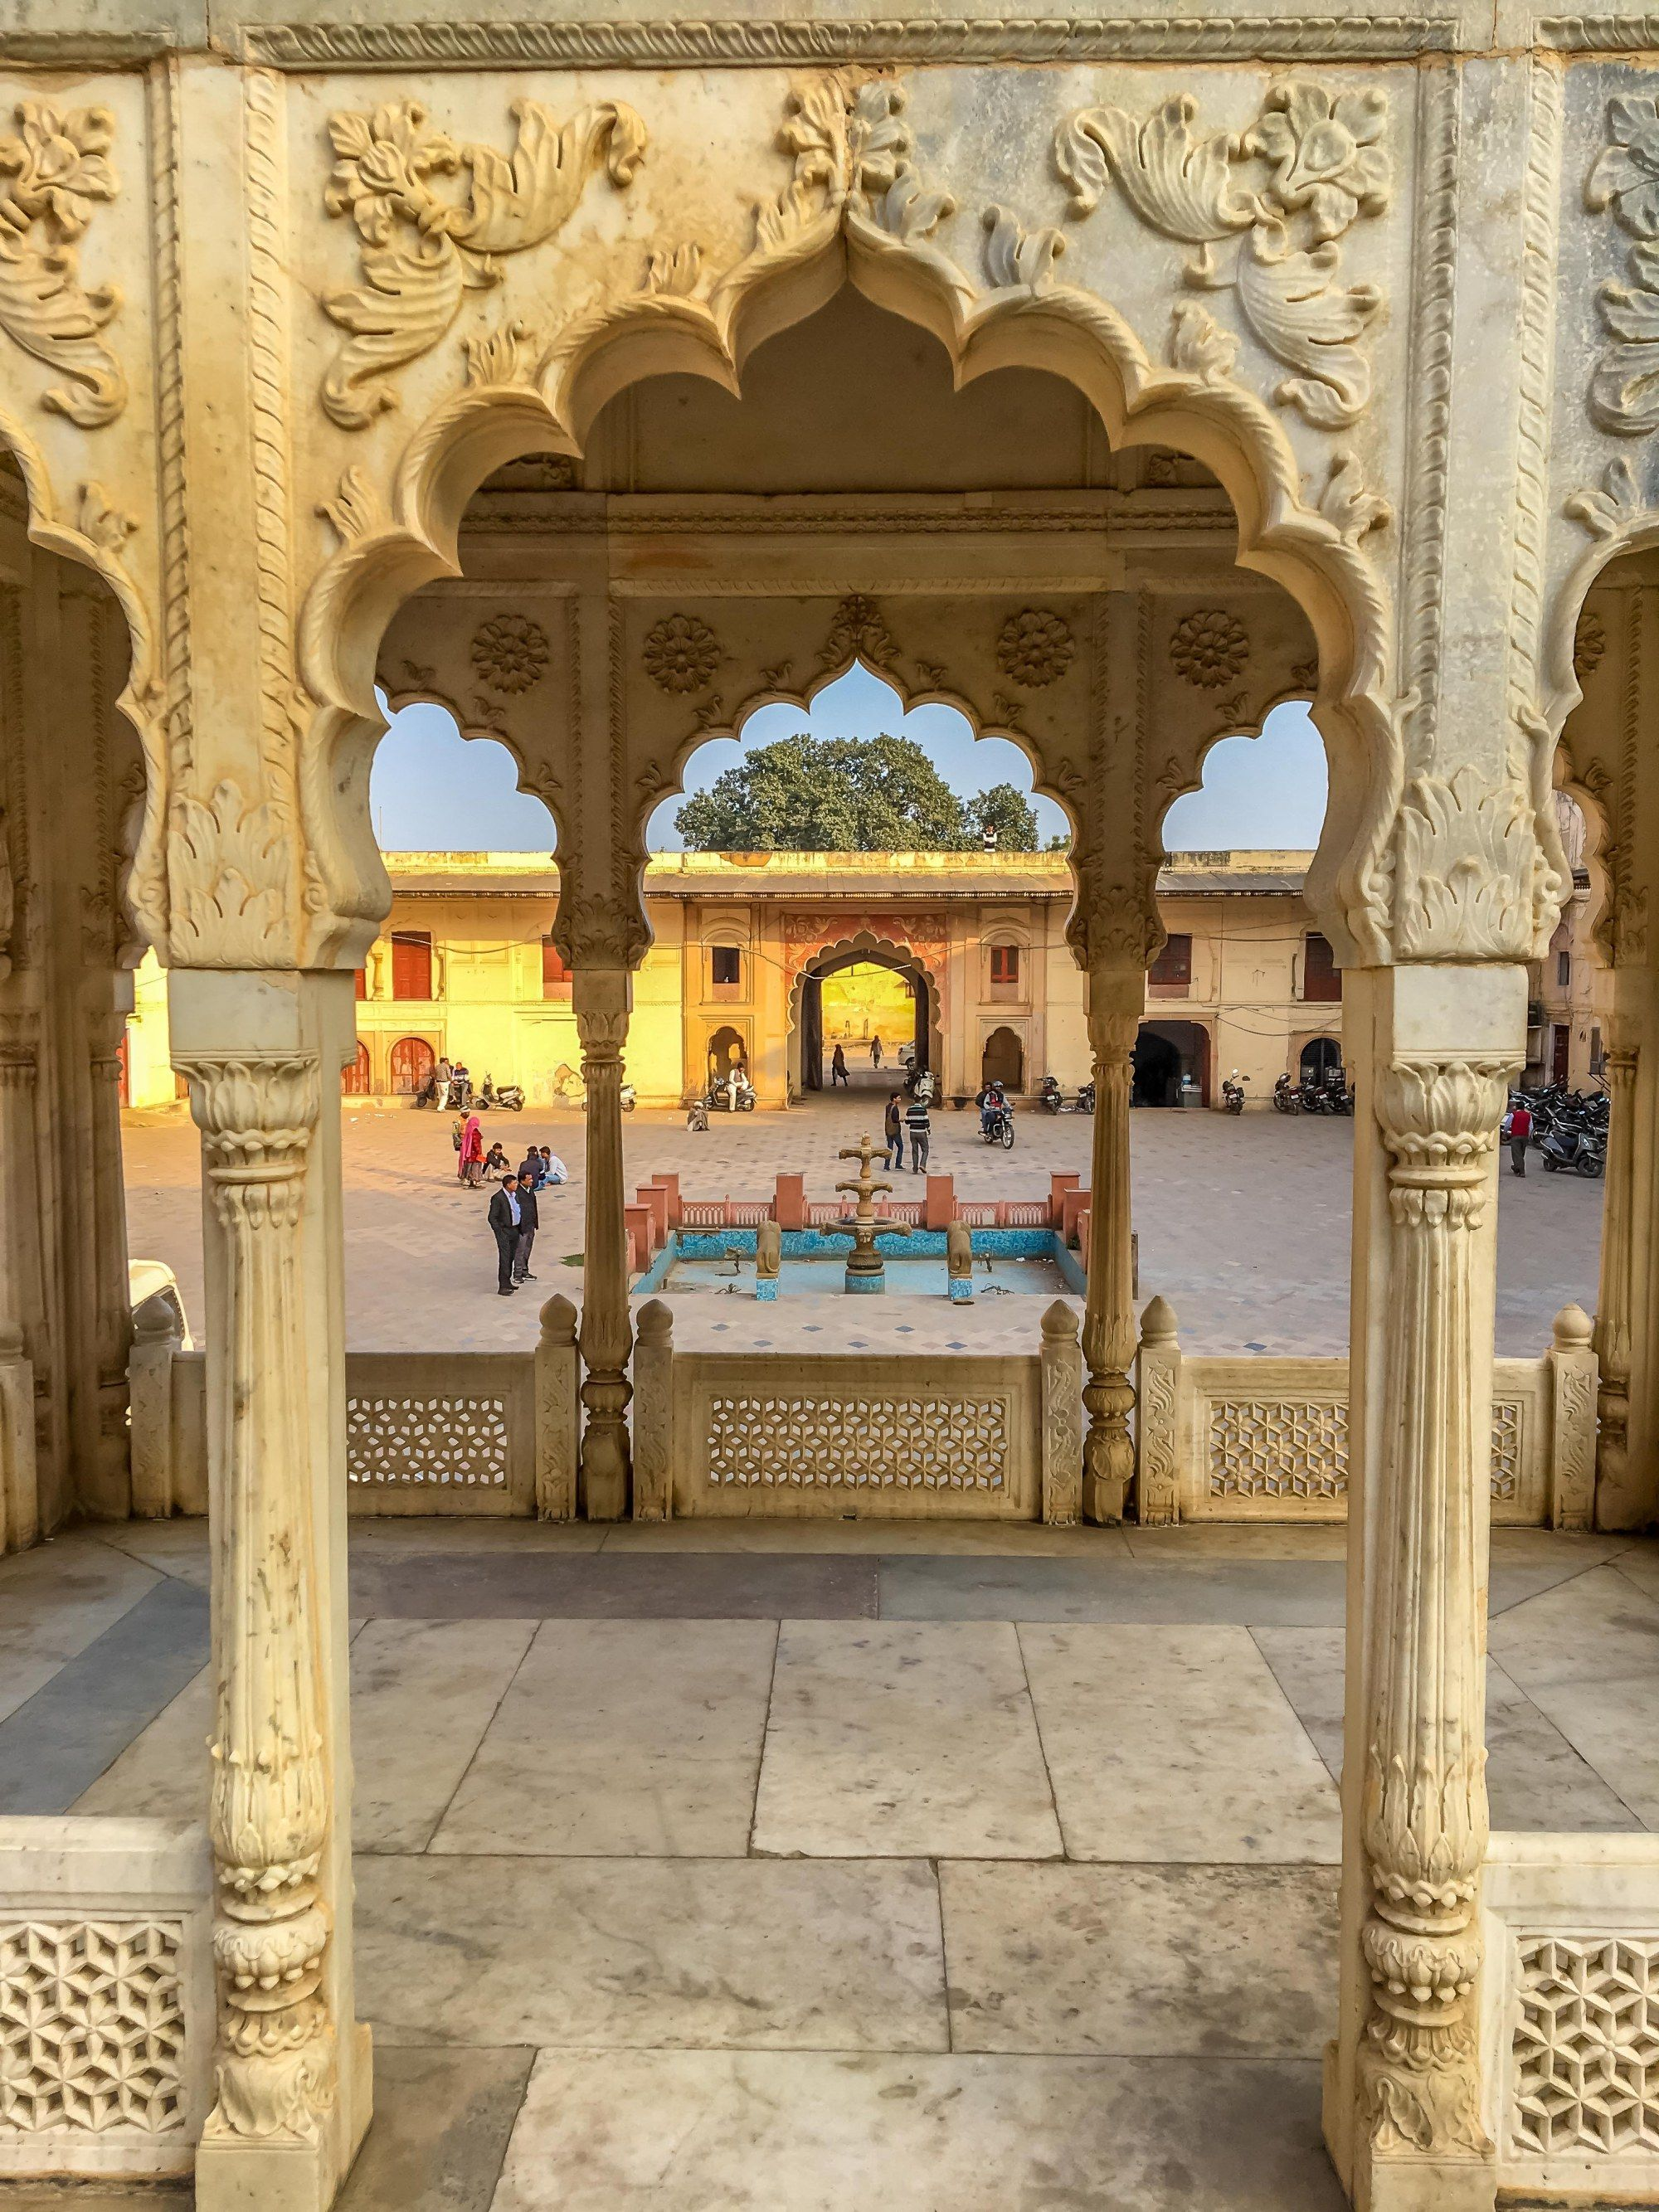 City Palace Alwar | Rajasthan | Building, Taj mahal, Palace